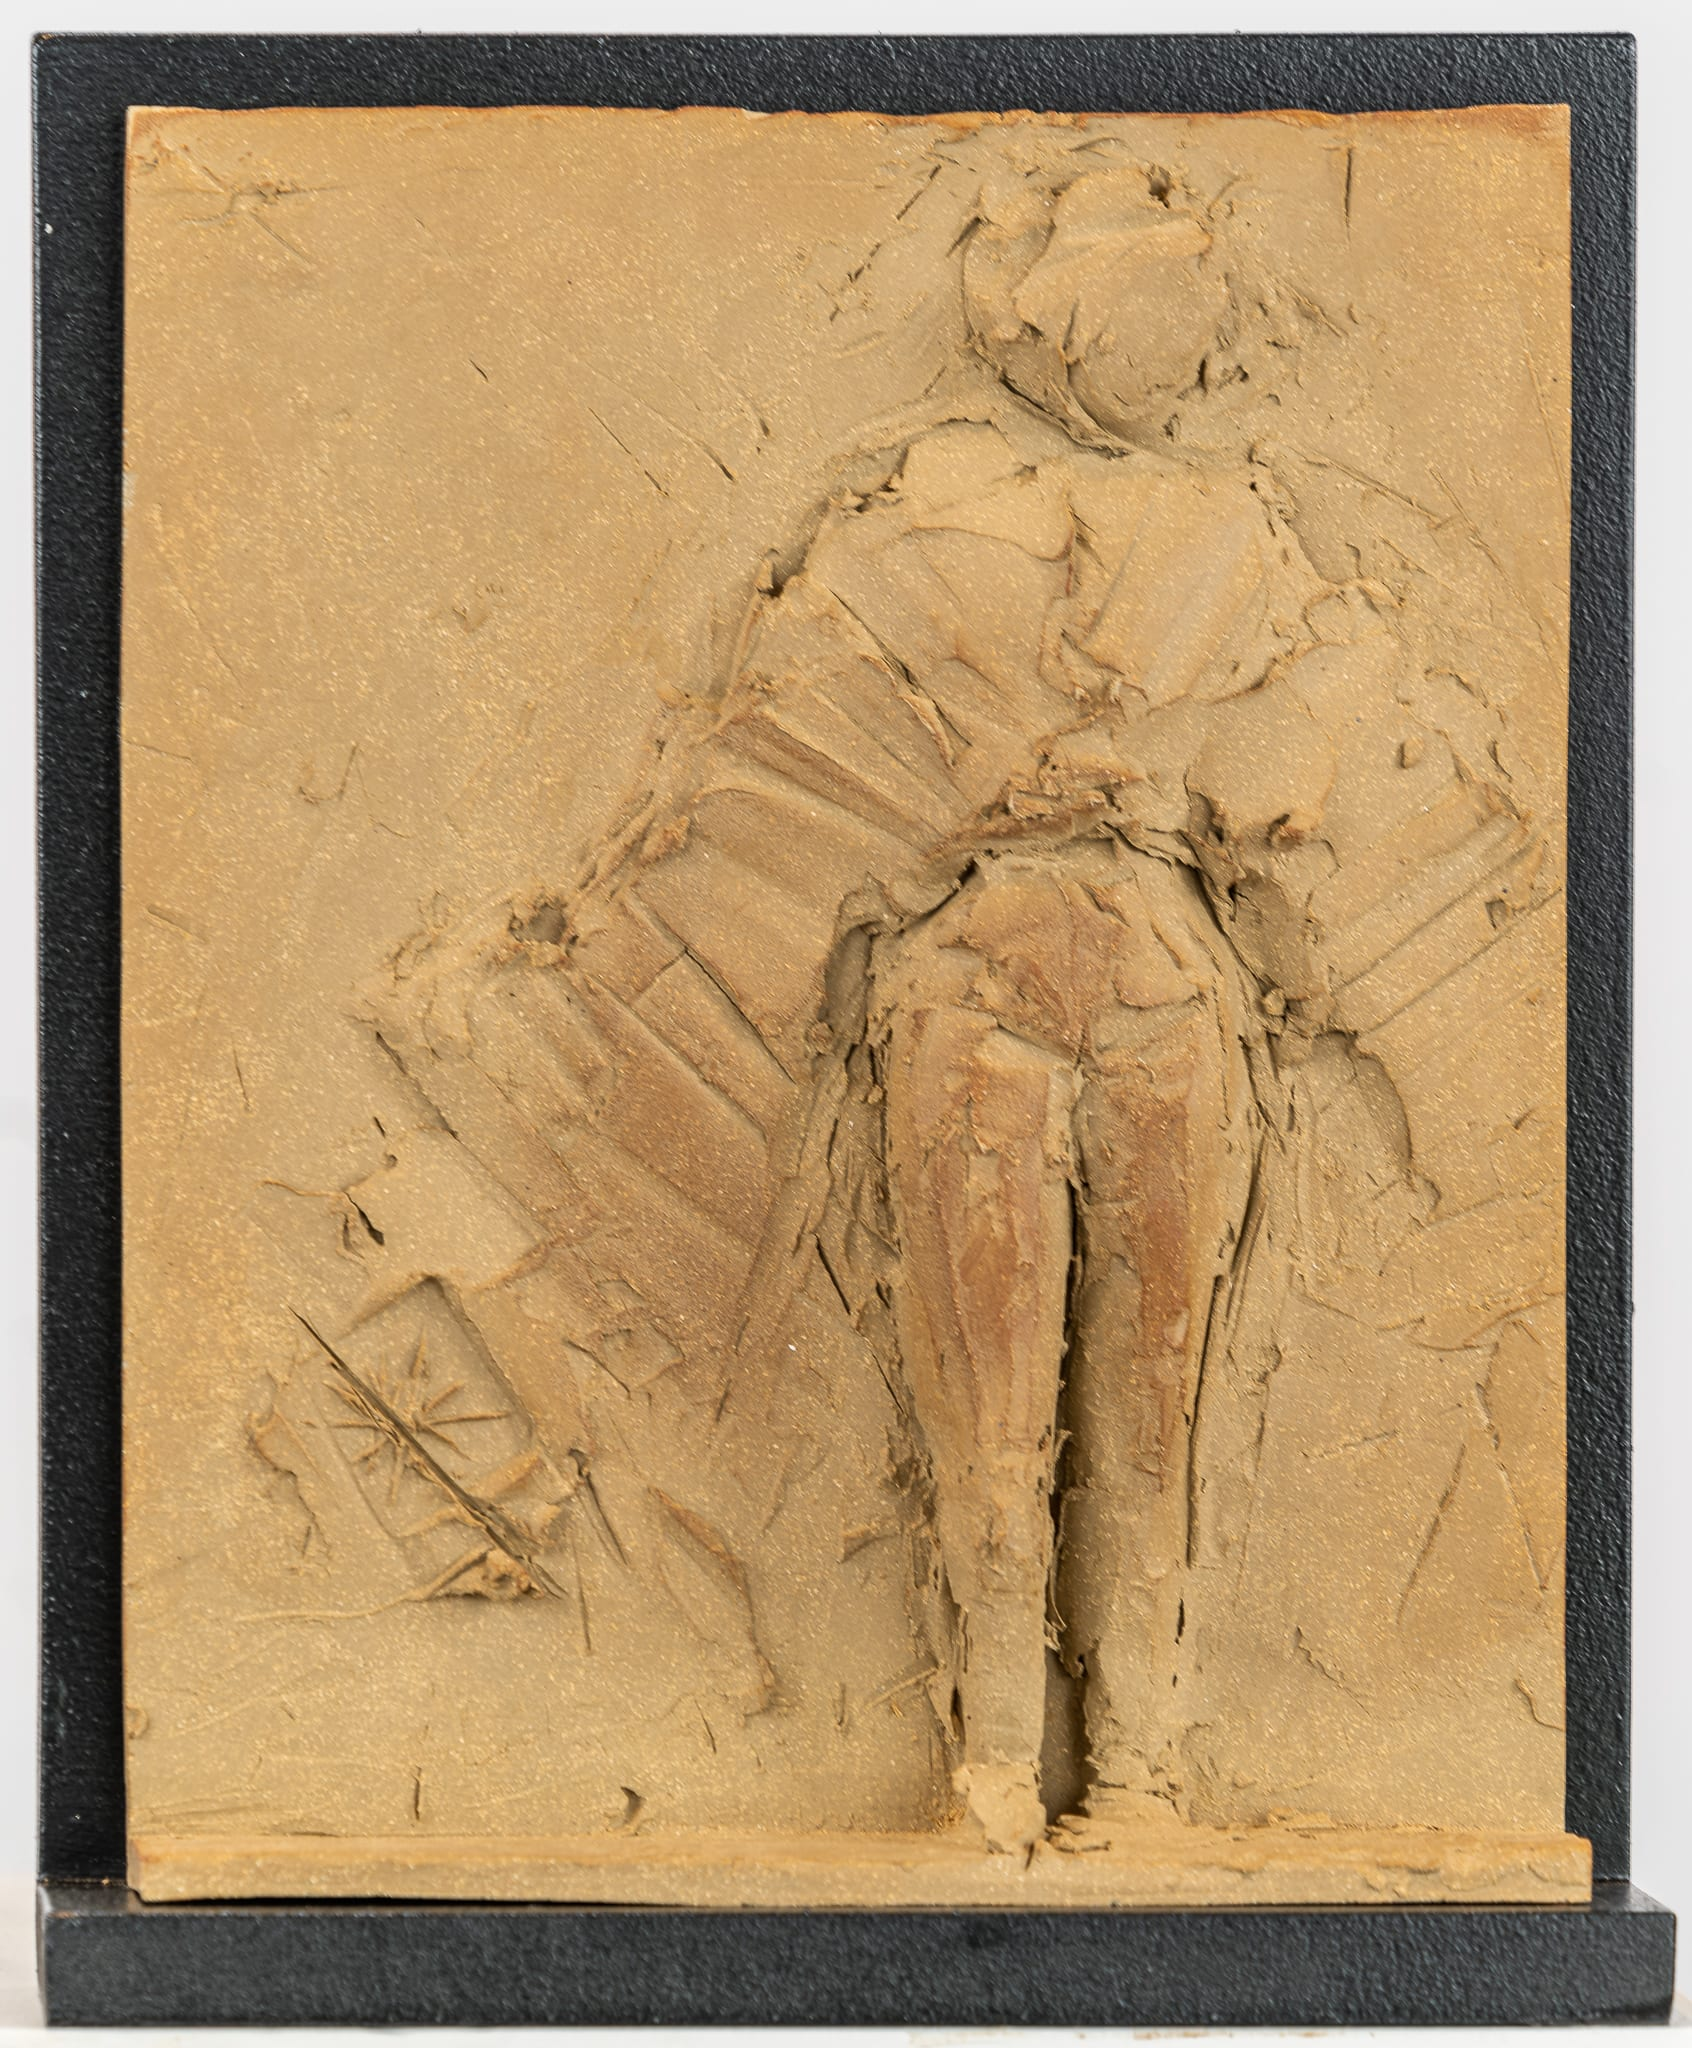 """<span class=""""link fancybox-details-link""""><a href=""""/artworks/categories/6/2381-emilio-diiorio-untitled-5-of-9-in-greek-muses-series-2020/"""">View Detail Page</a></span><div class=""""artist""""><strong>Emilio DiIorio</strong></div> <div class=""""title""""><em>Untitled (5 of 9 in Greek Muses series in brown clay)</em>, 2020</div> <div class=""""medium"""">Ceramic</div> <div class=""""dimensions"""">12 1/4 x 10 x 2 1/4 in<br /> 31.1 x 25.4 x 5.7 cm</div>"""